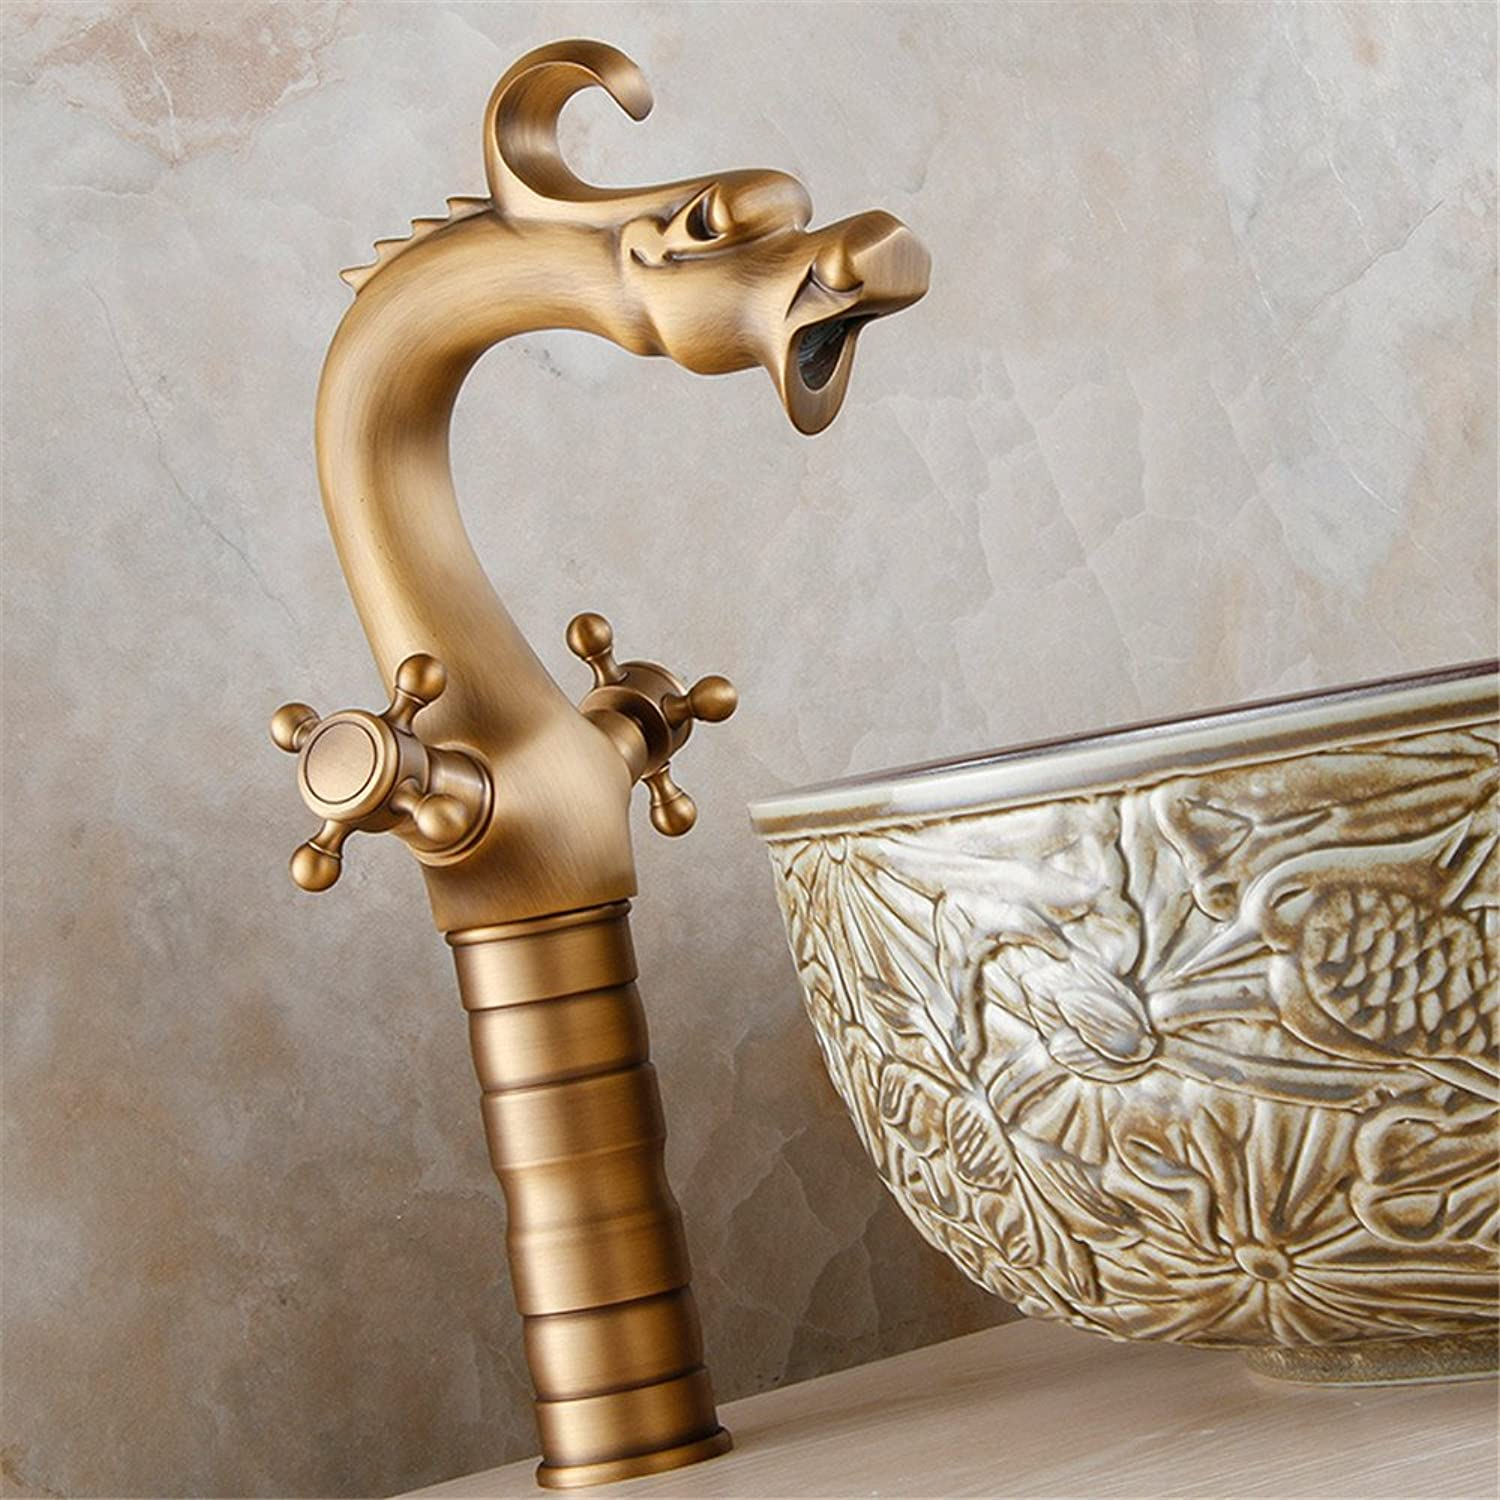 SADASD European Bathroom sink faucet All Copper kitchen faucet Retro Double Handle Dragon Art Hot and Cold Water Basin Mixer Taps With G1 2 Hose